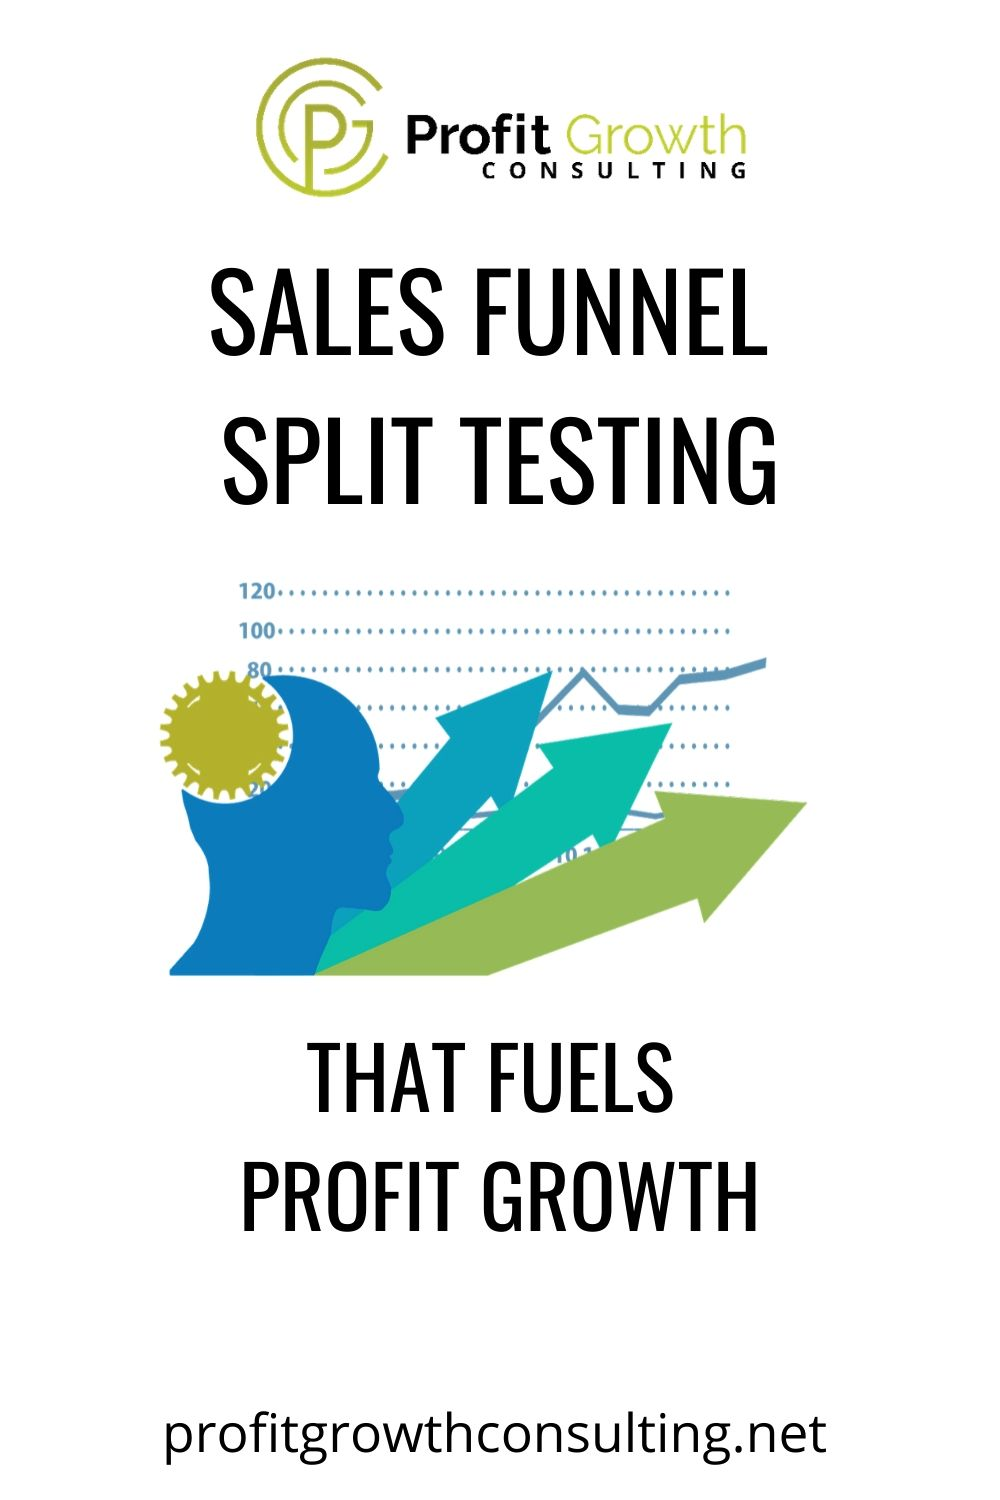 sales funnel consulting services